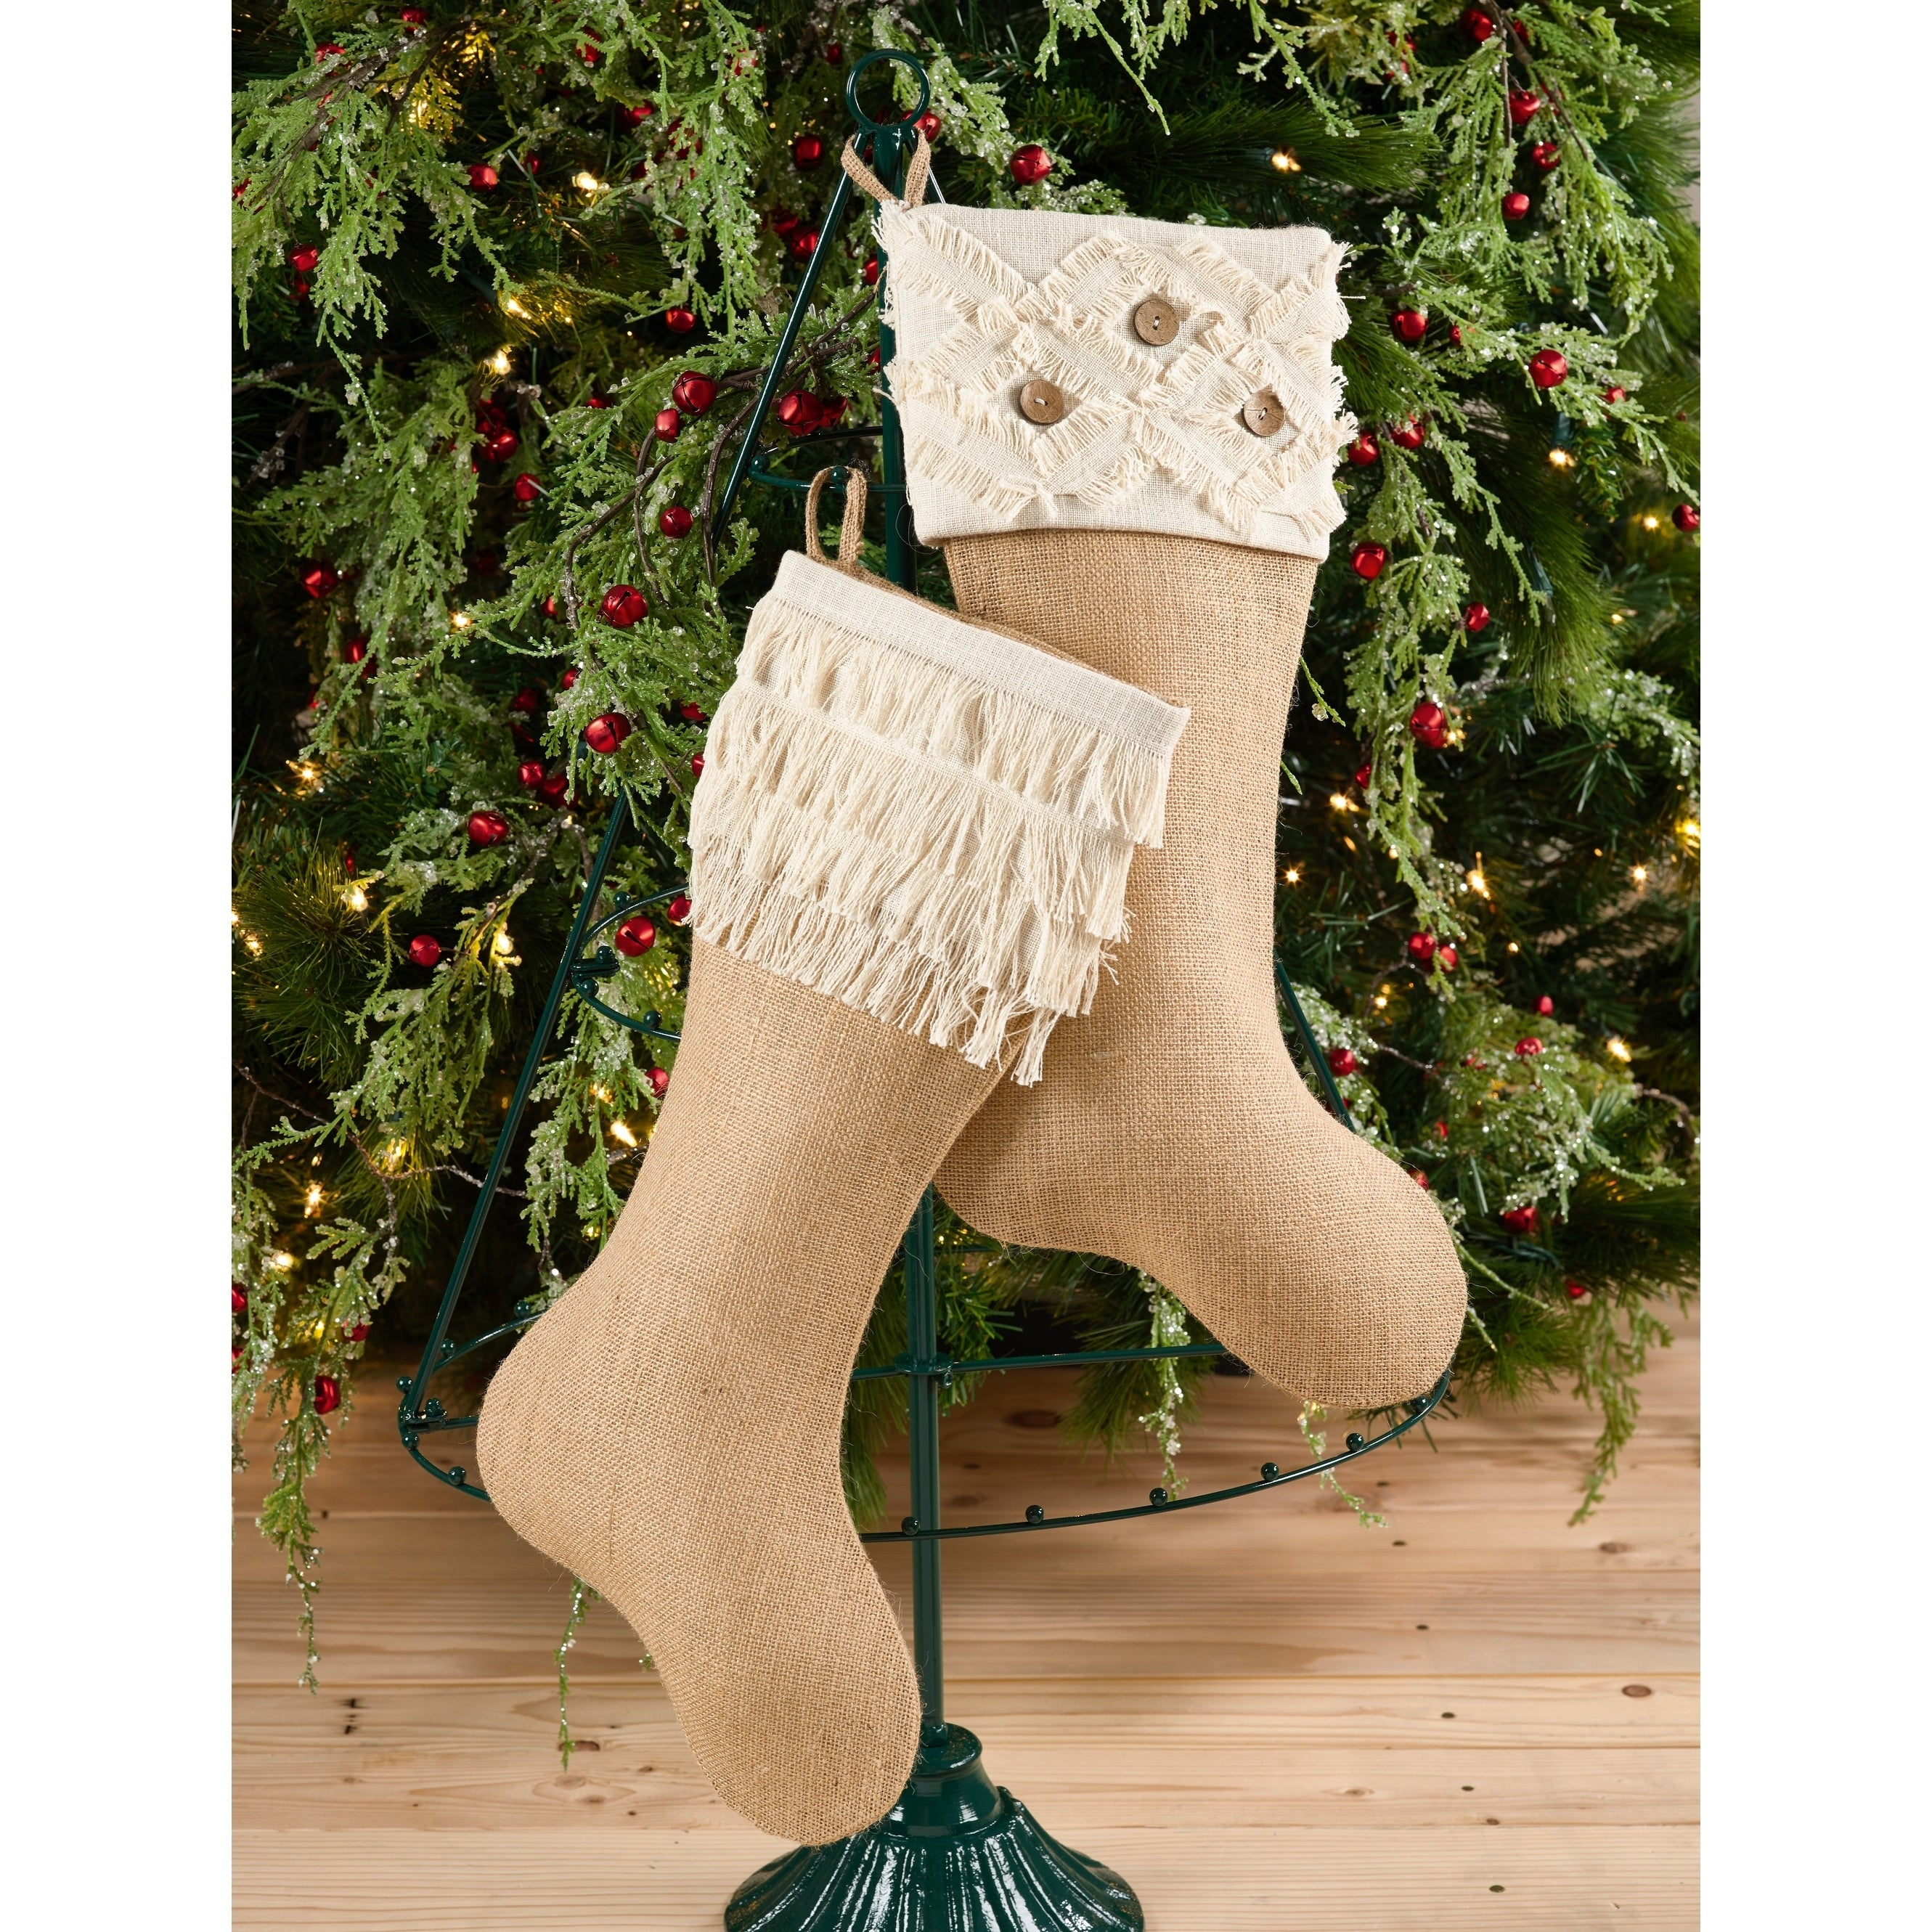 6684cc8f067 Shop Tiered Fringe Design Decorative Jute Christmas Stocking - On Sale -  Free Shipping On Orders Over  45 - Overstock - 17415283